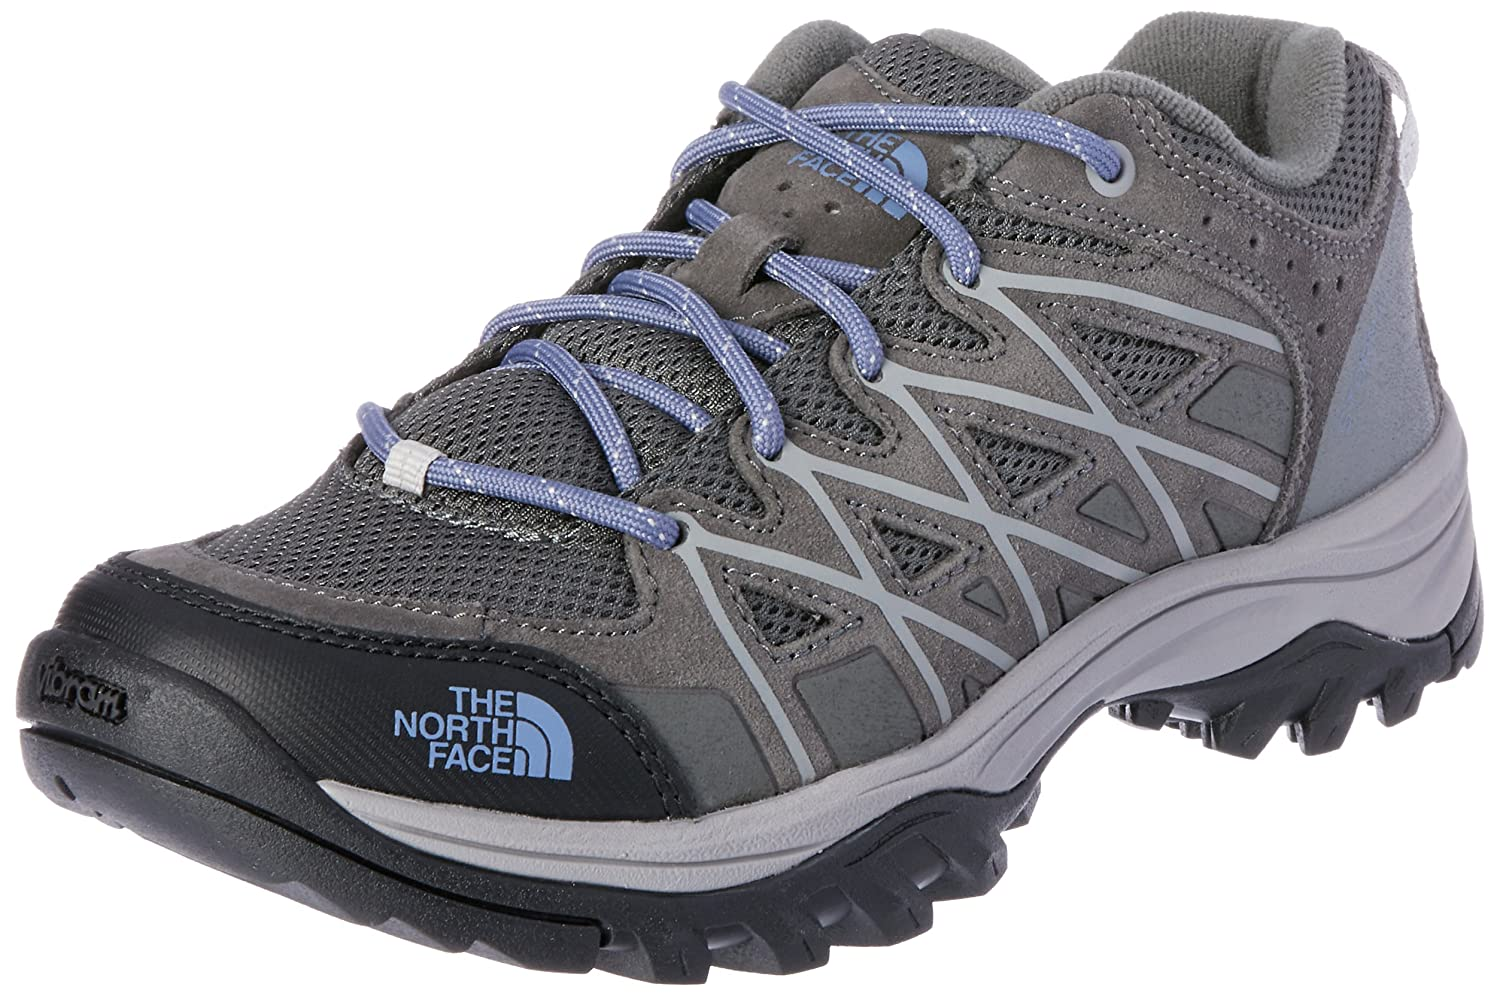 The North Face Womens Storm III B01HHAHW2O 7.5|Dark Gull Grey & Marlin Blue